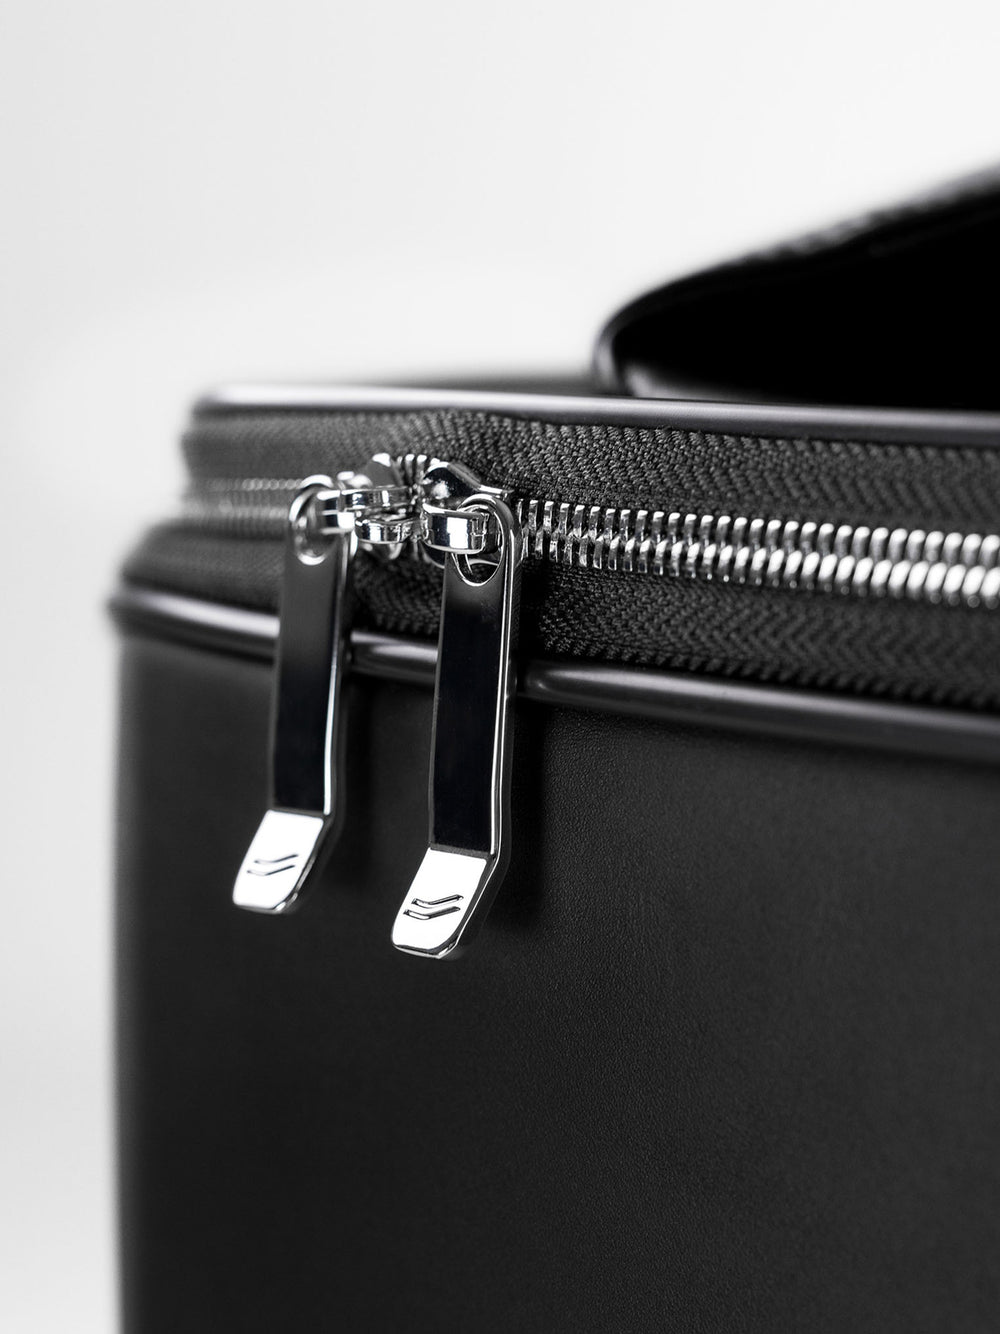 f38 carry on luggage ykk zippers in black leather schwarzes leder